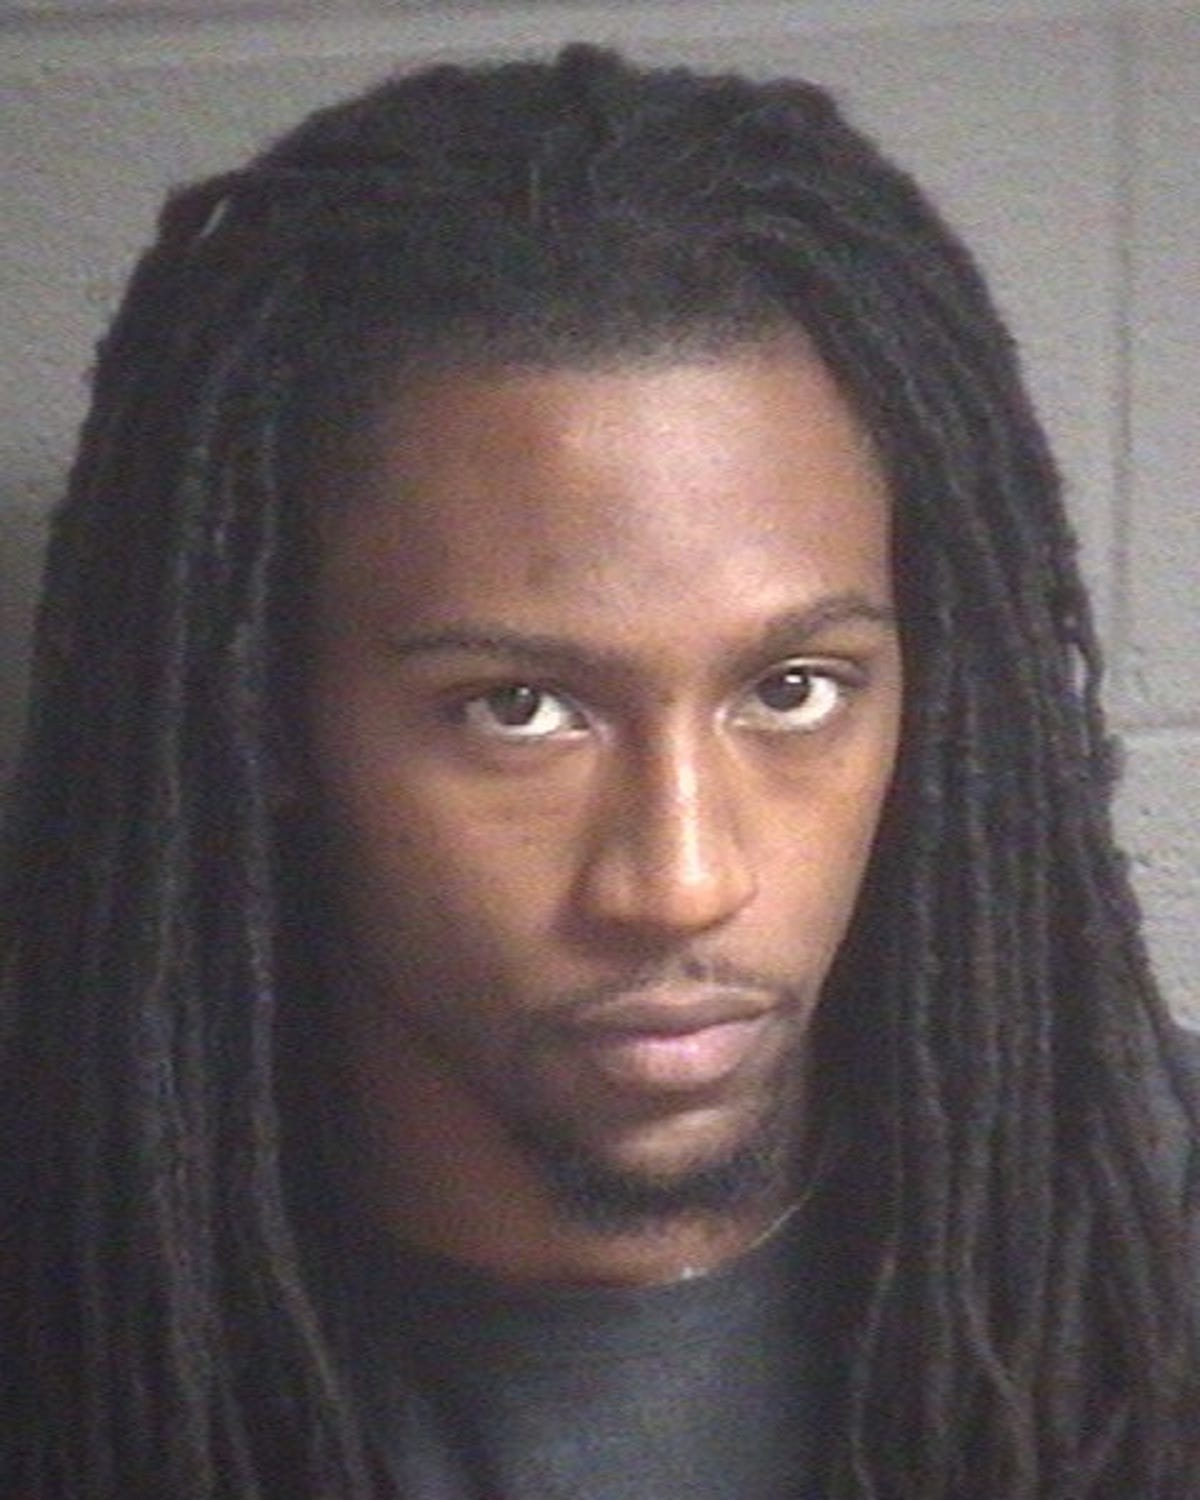 Cops: Man charged in Asheville shootout a gang member